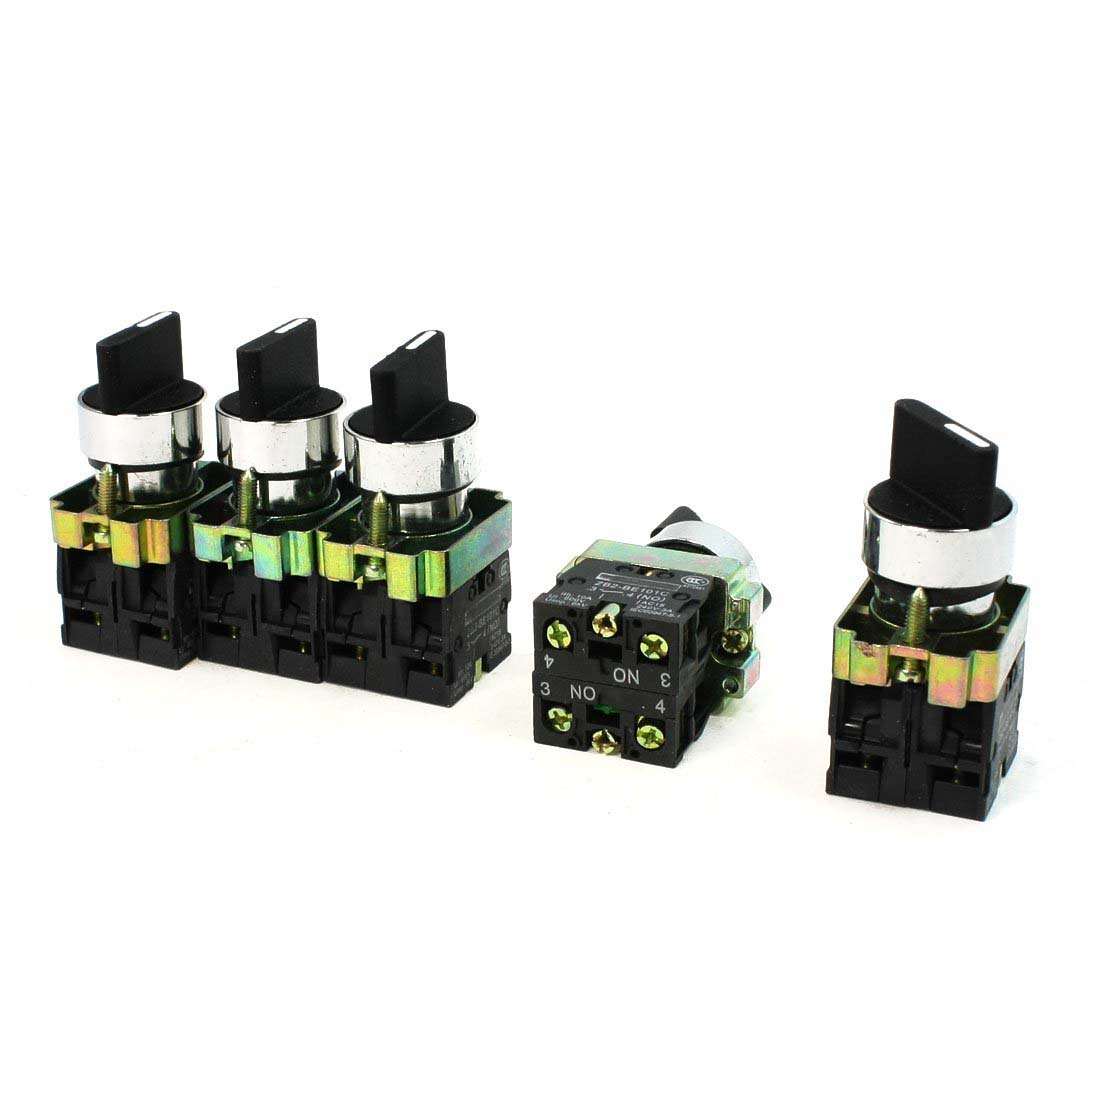 10A Ith 600V Ui Lug Control 4 Terminal 3 Position DPST 2NO Rotary Switch 5Pcs lw6d 2 5 position rotary changeover cam combination switch 4kw ui 380v ith 5a